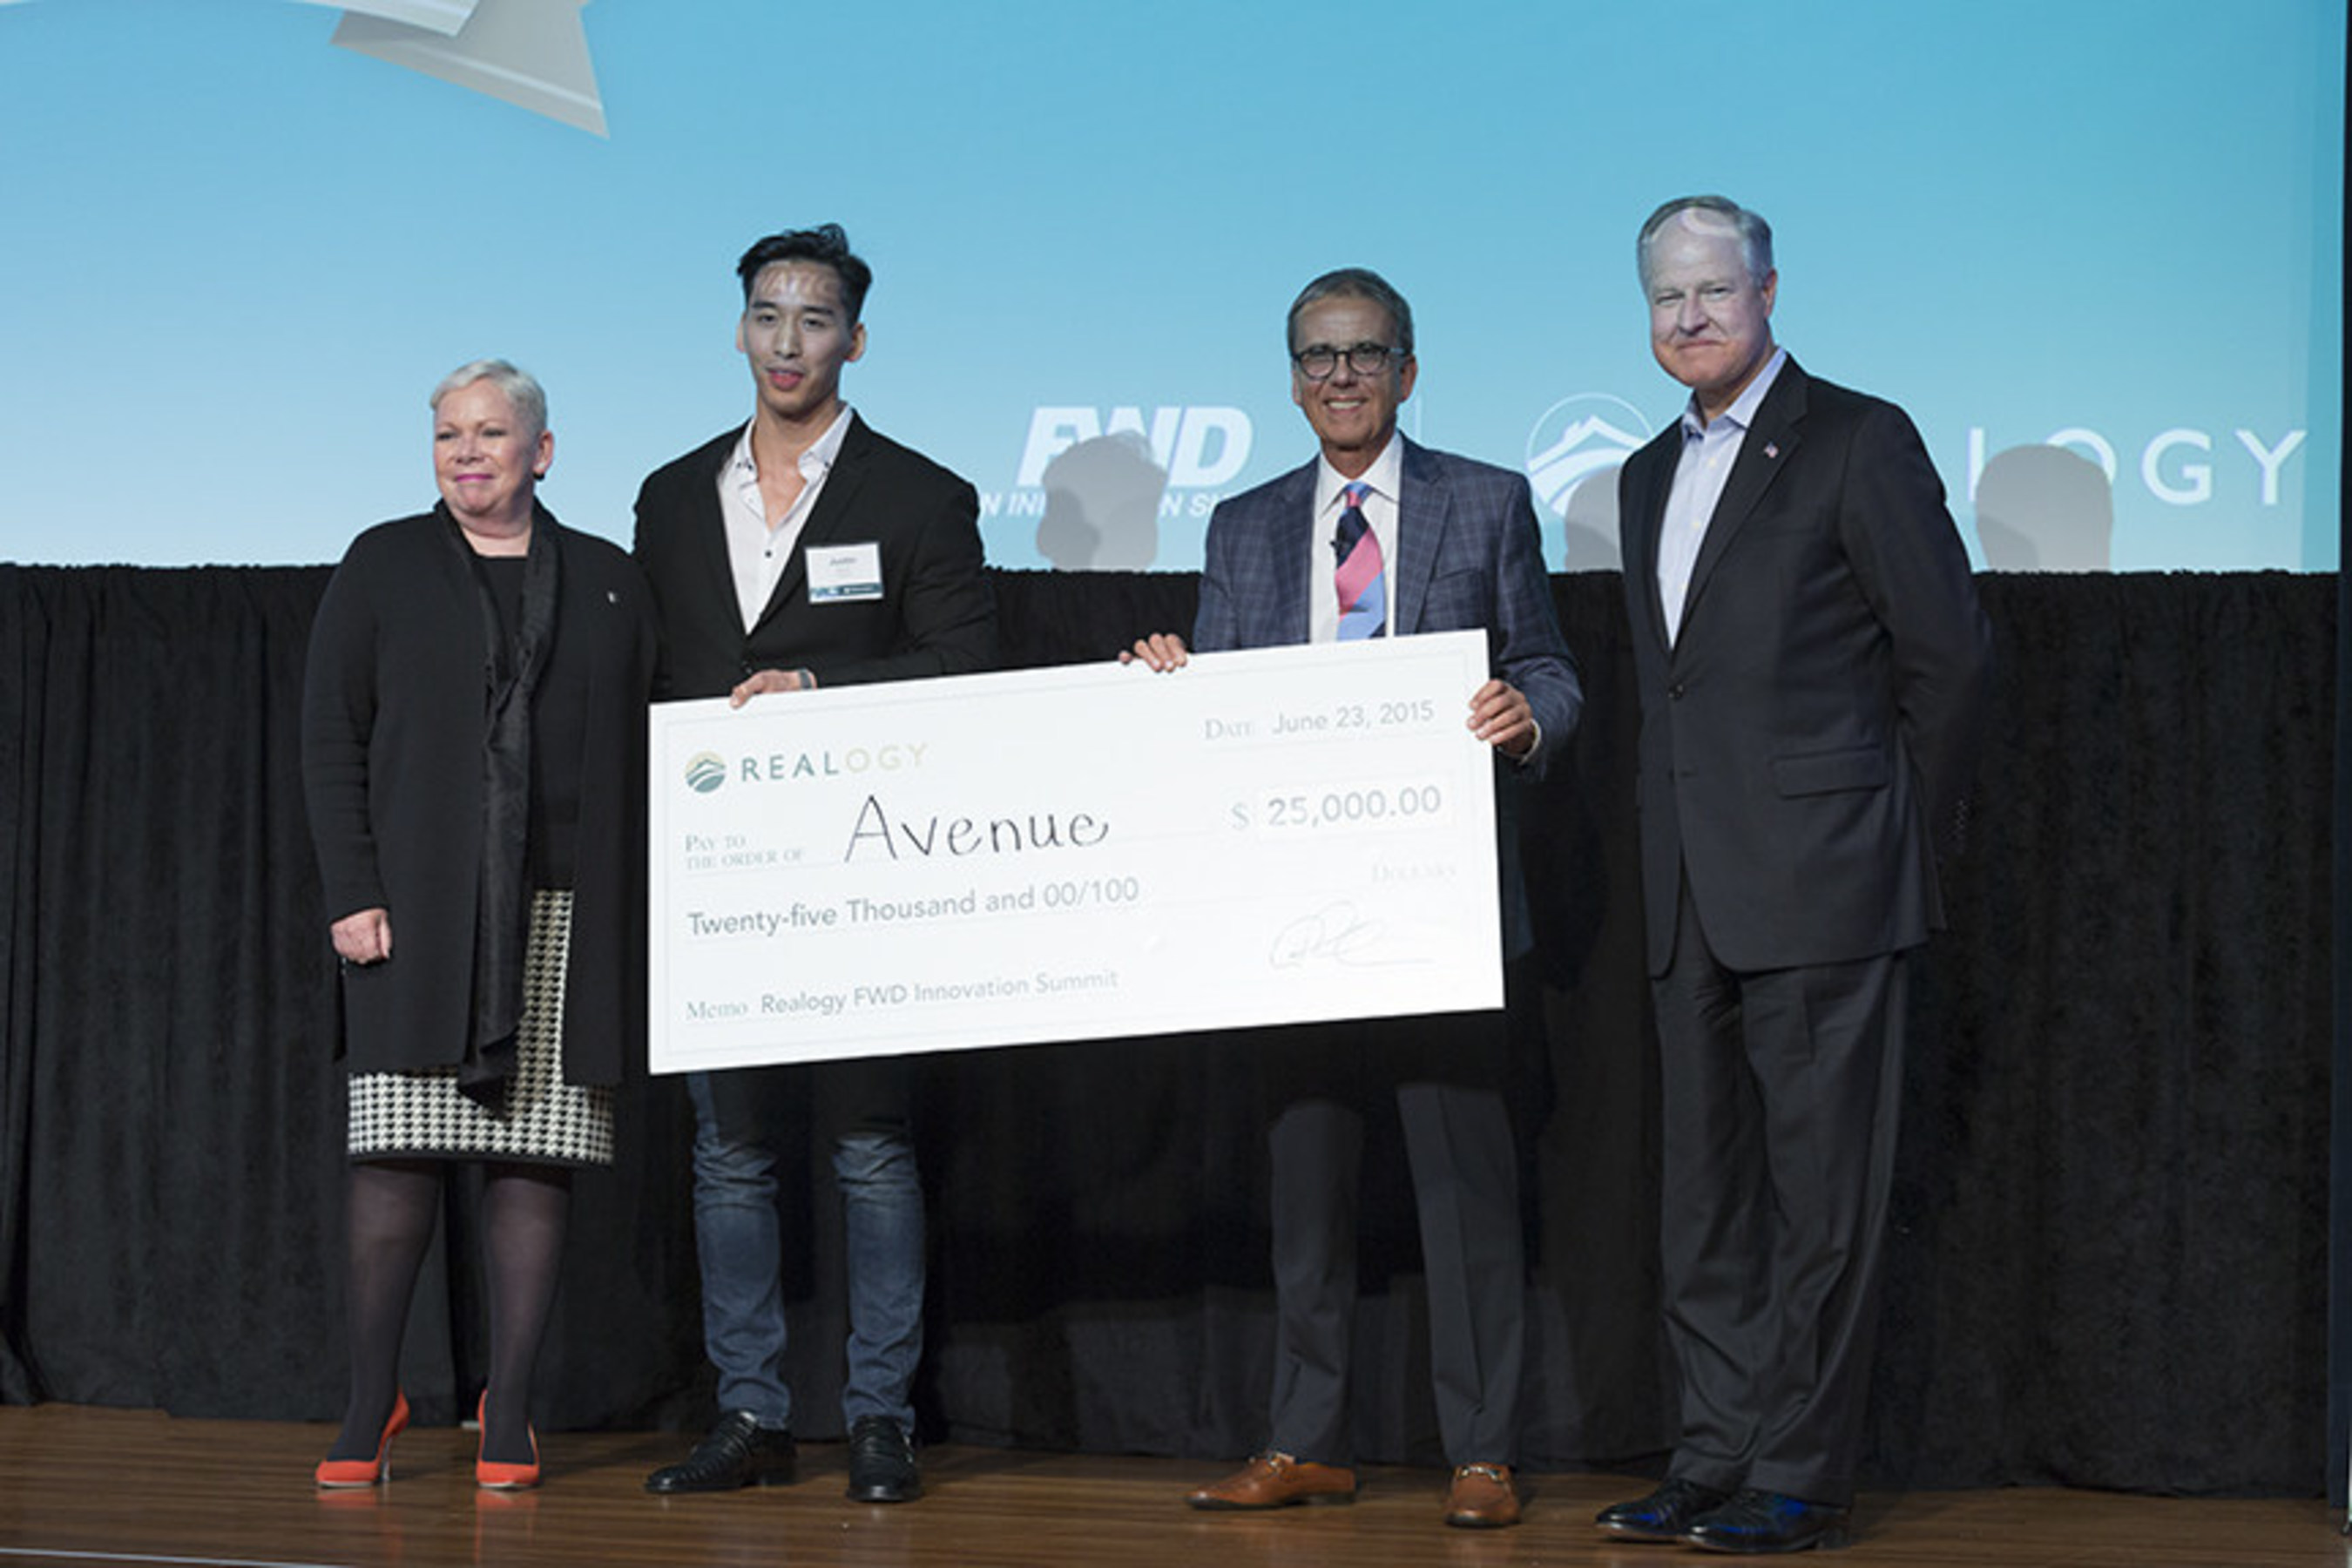 Avenue Named Winner at 2015 Realogy FWD Innovation Summit